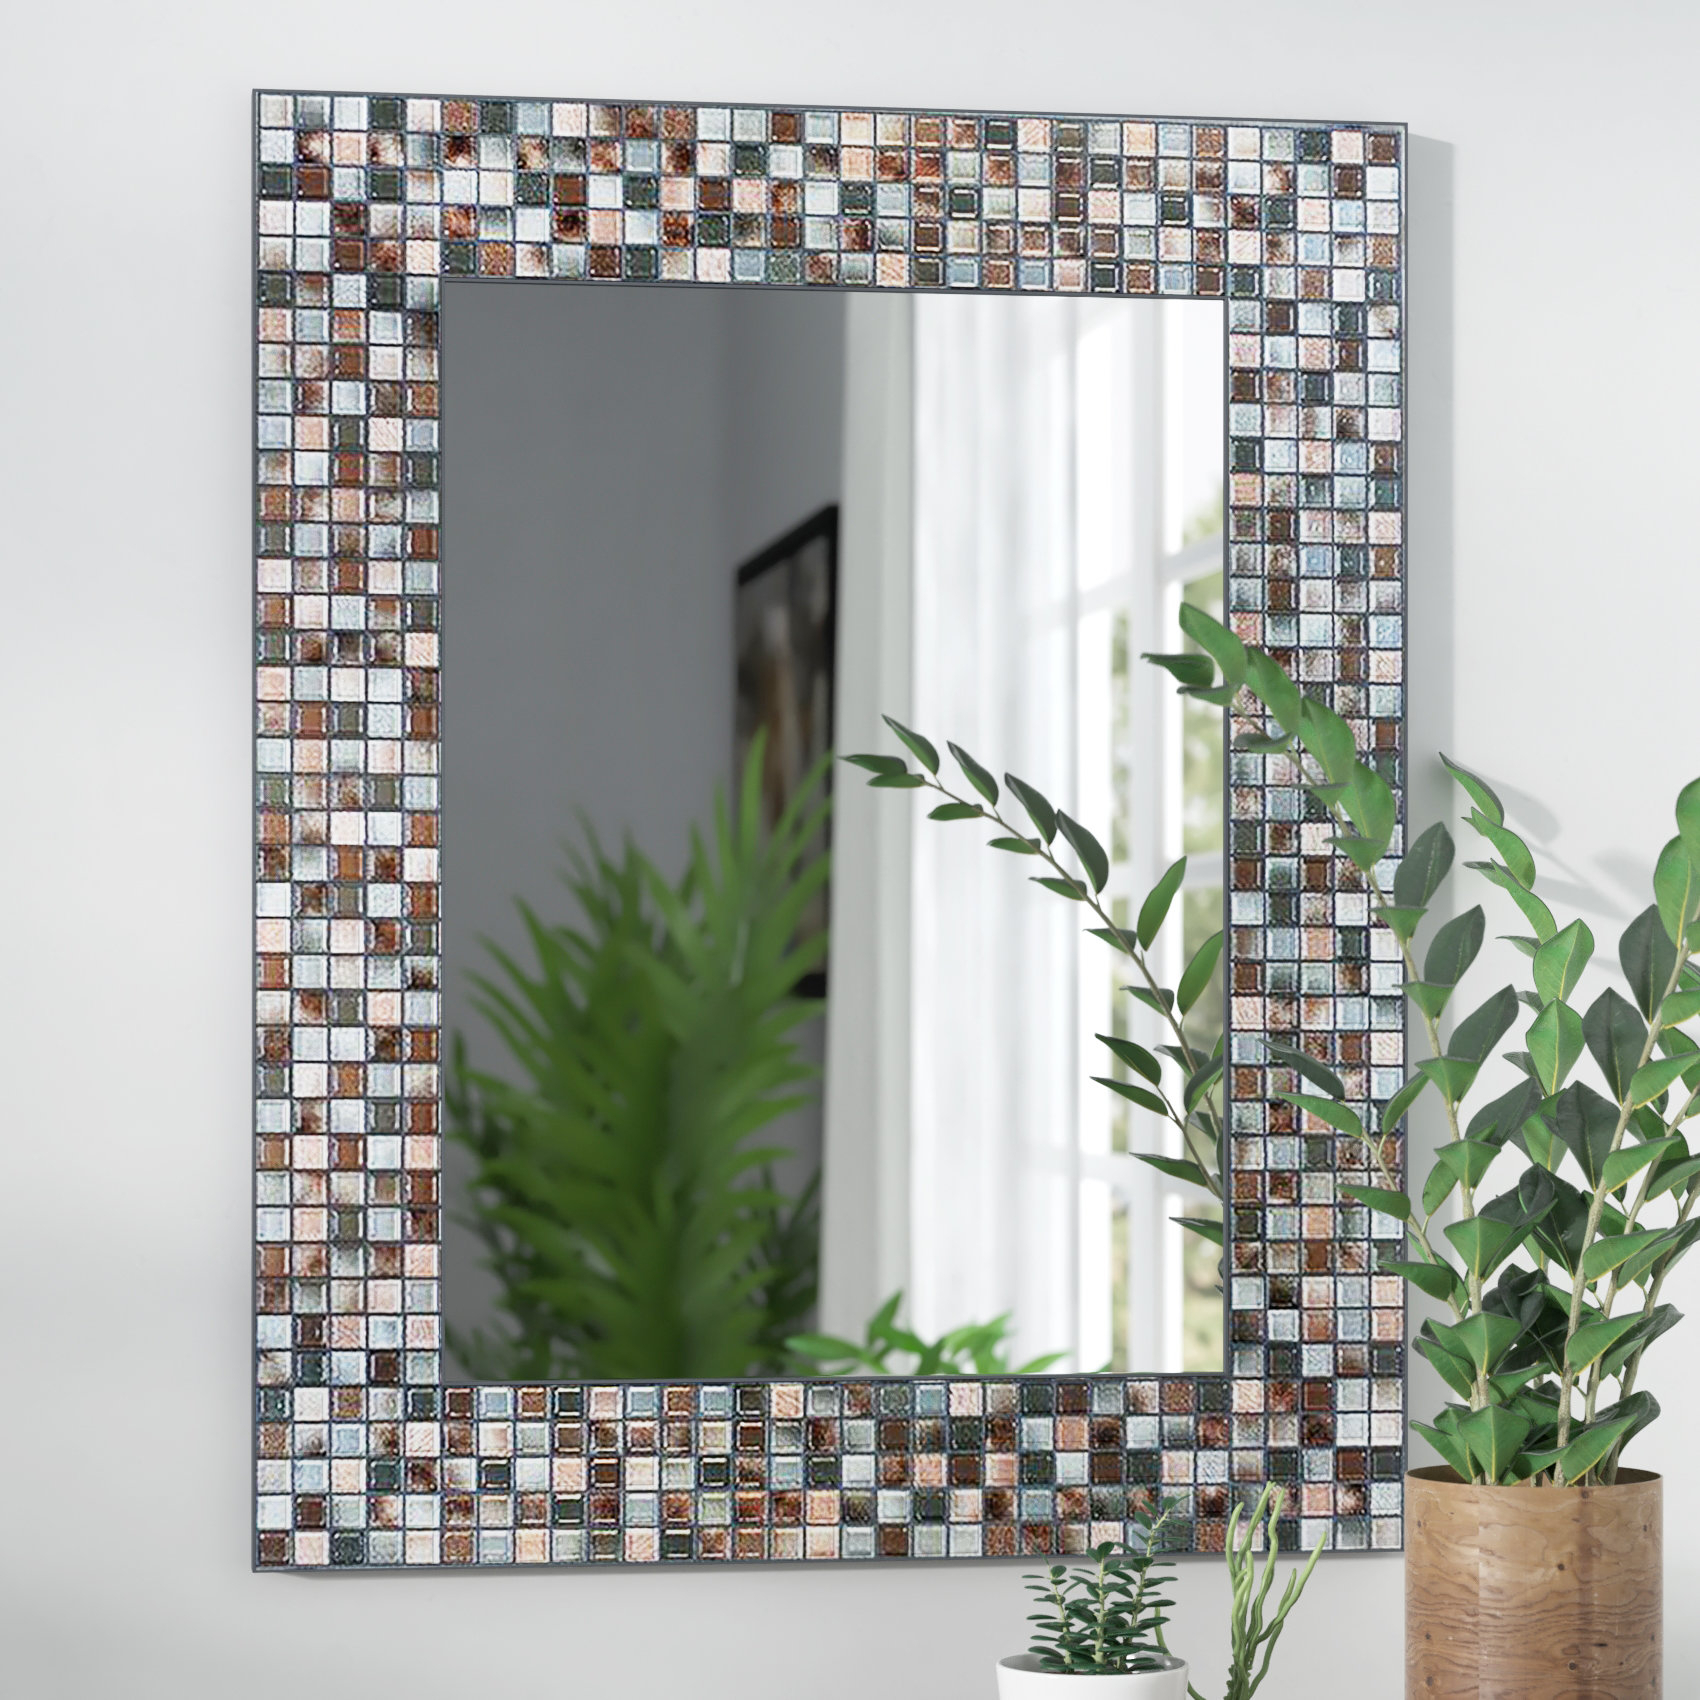 Mosaic Wall Mirrors | Wayfair for Swagger Accent Wall Mirrors (Image 20 of 30)